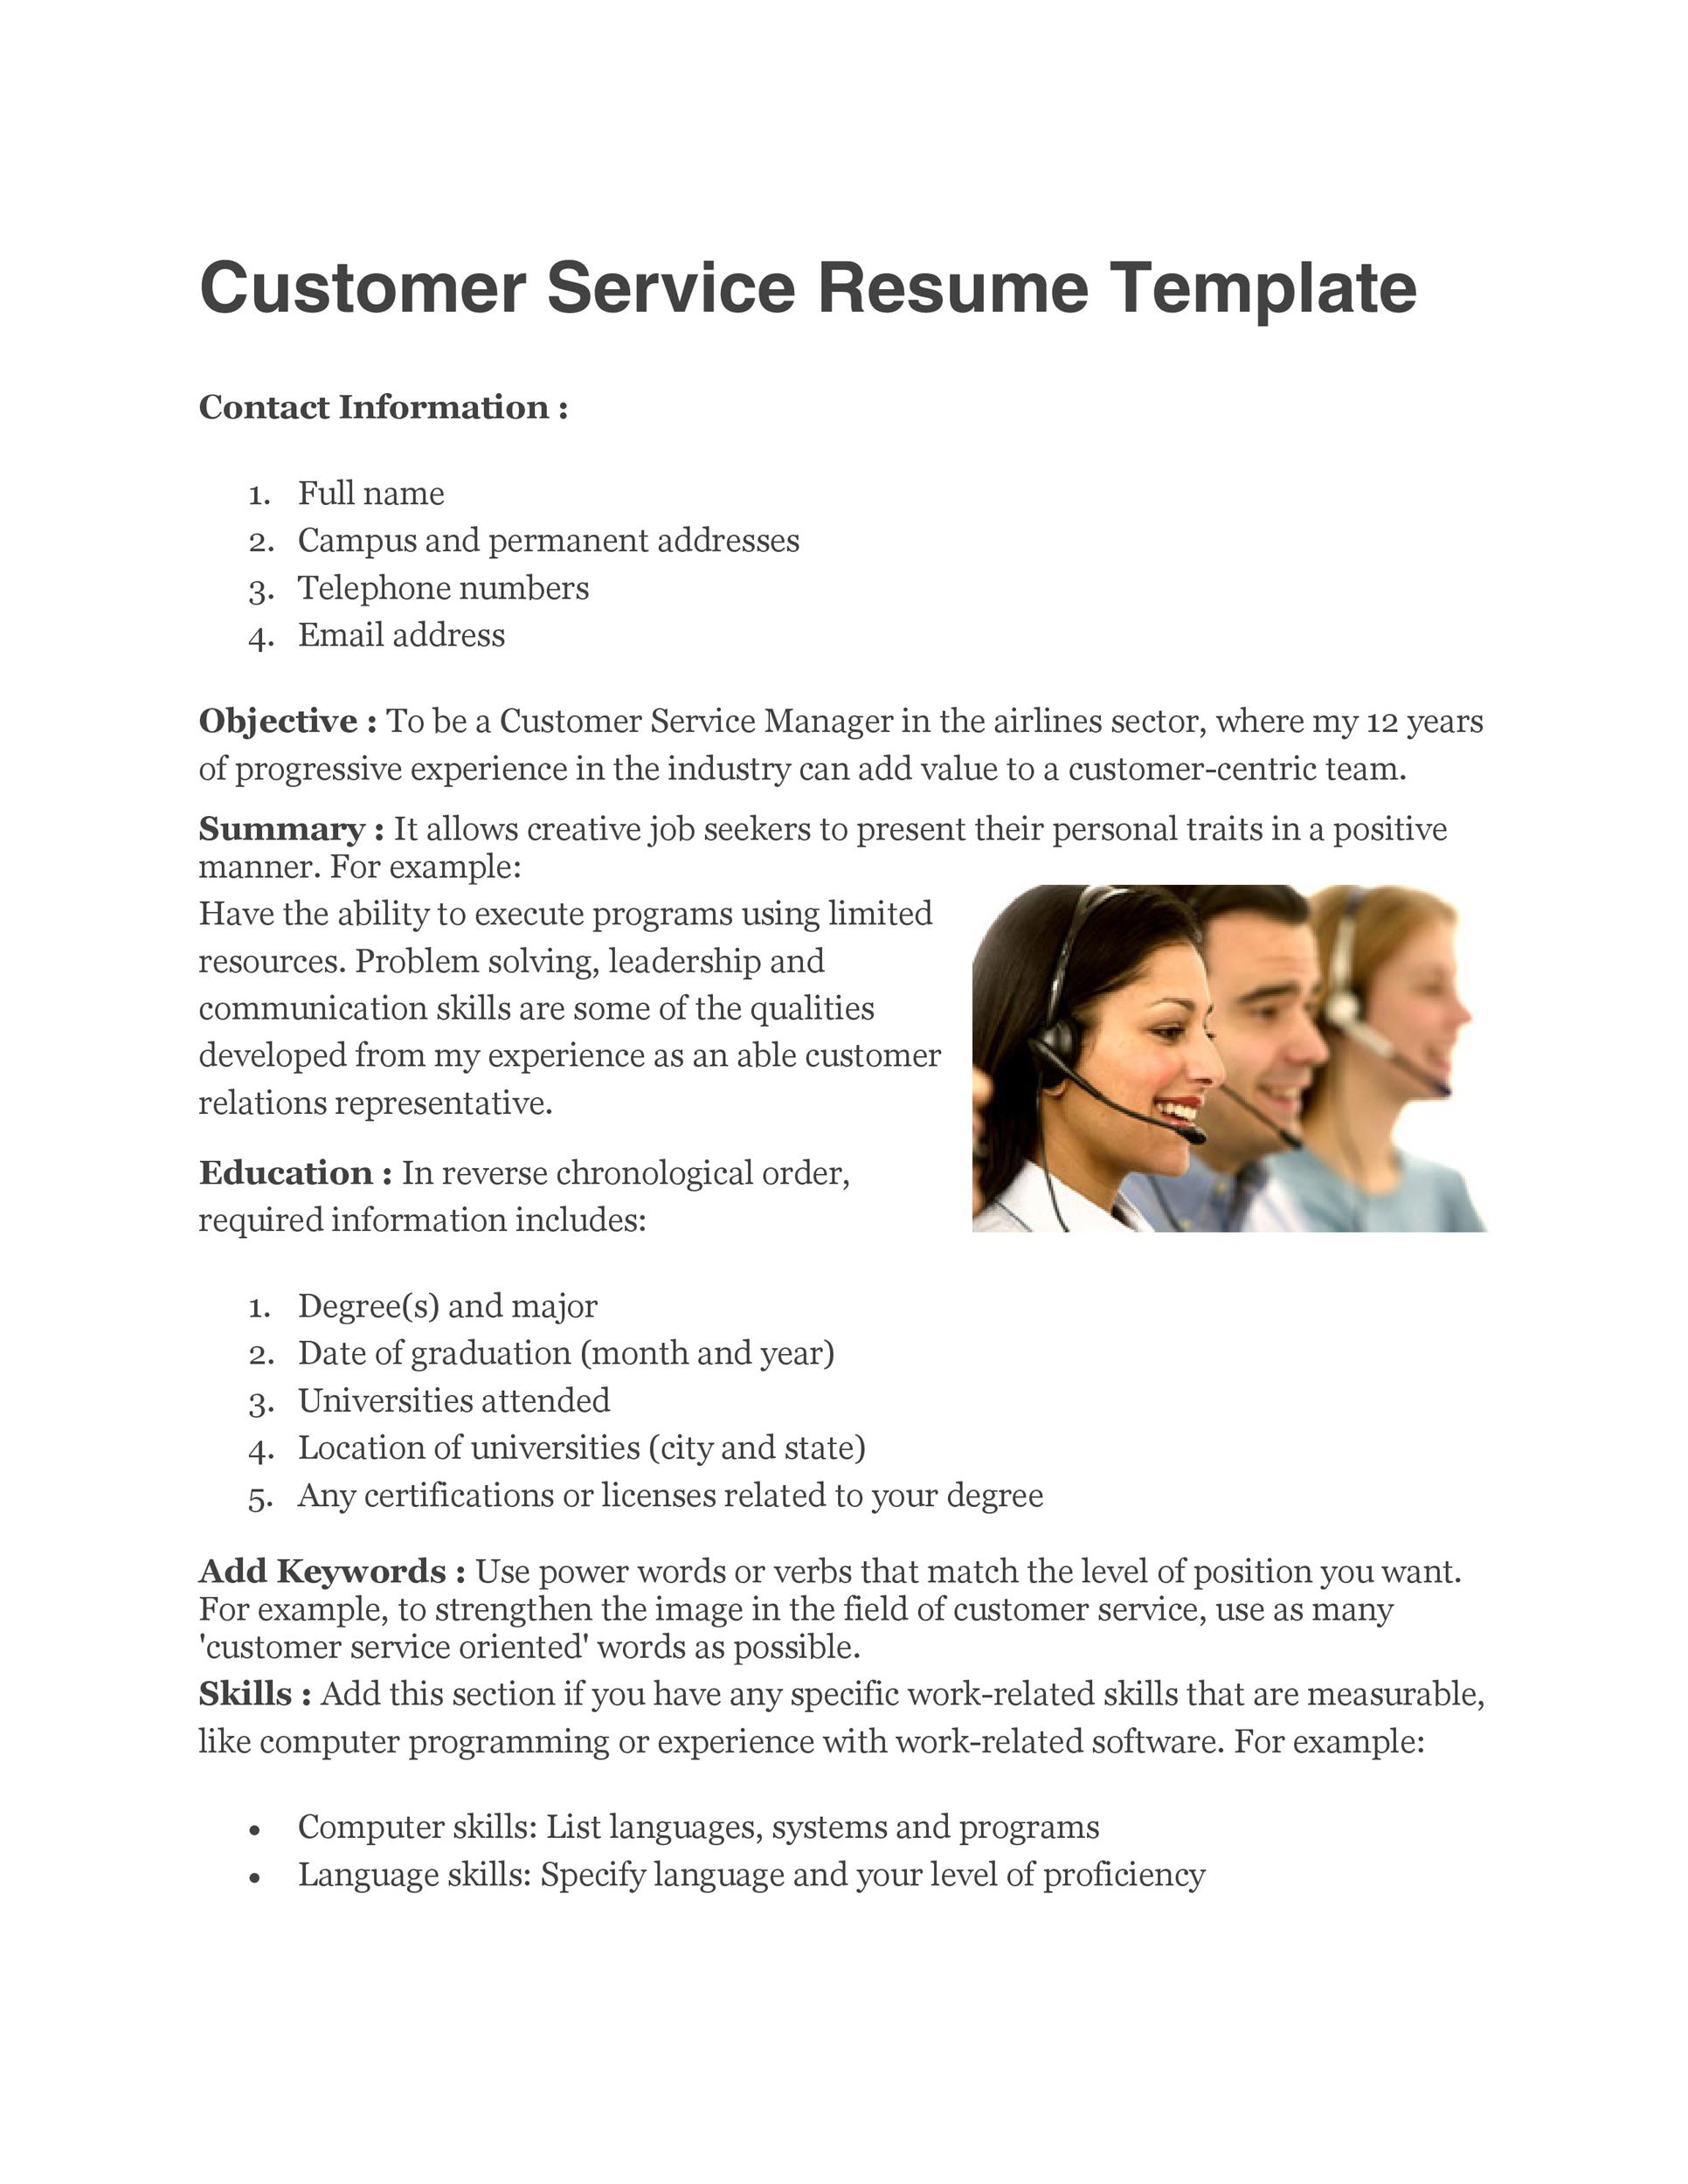 free customer service resume template 13